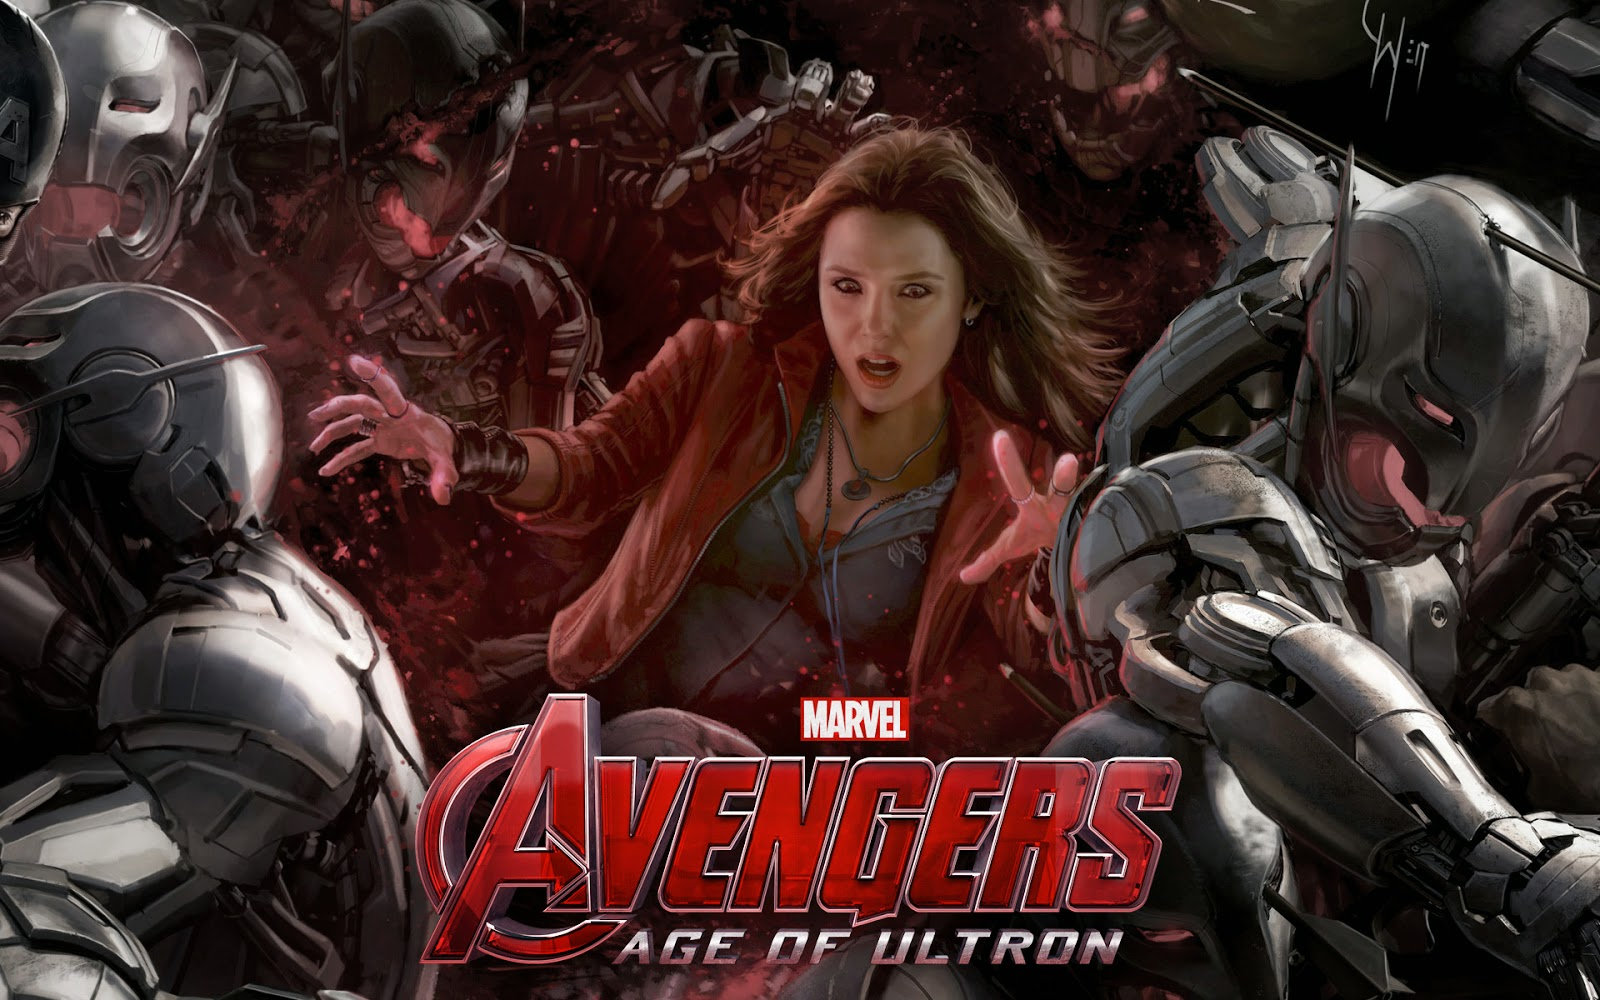 Free Download Avengers Age Of Ultron 2015 Wallpaper Kfzoom